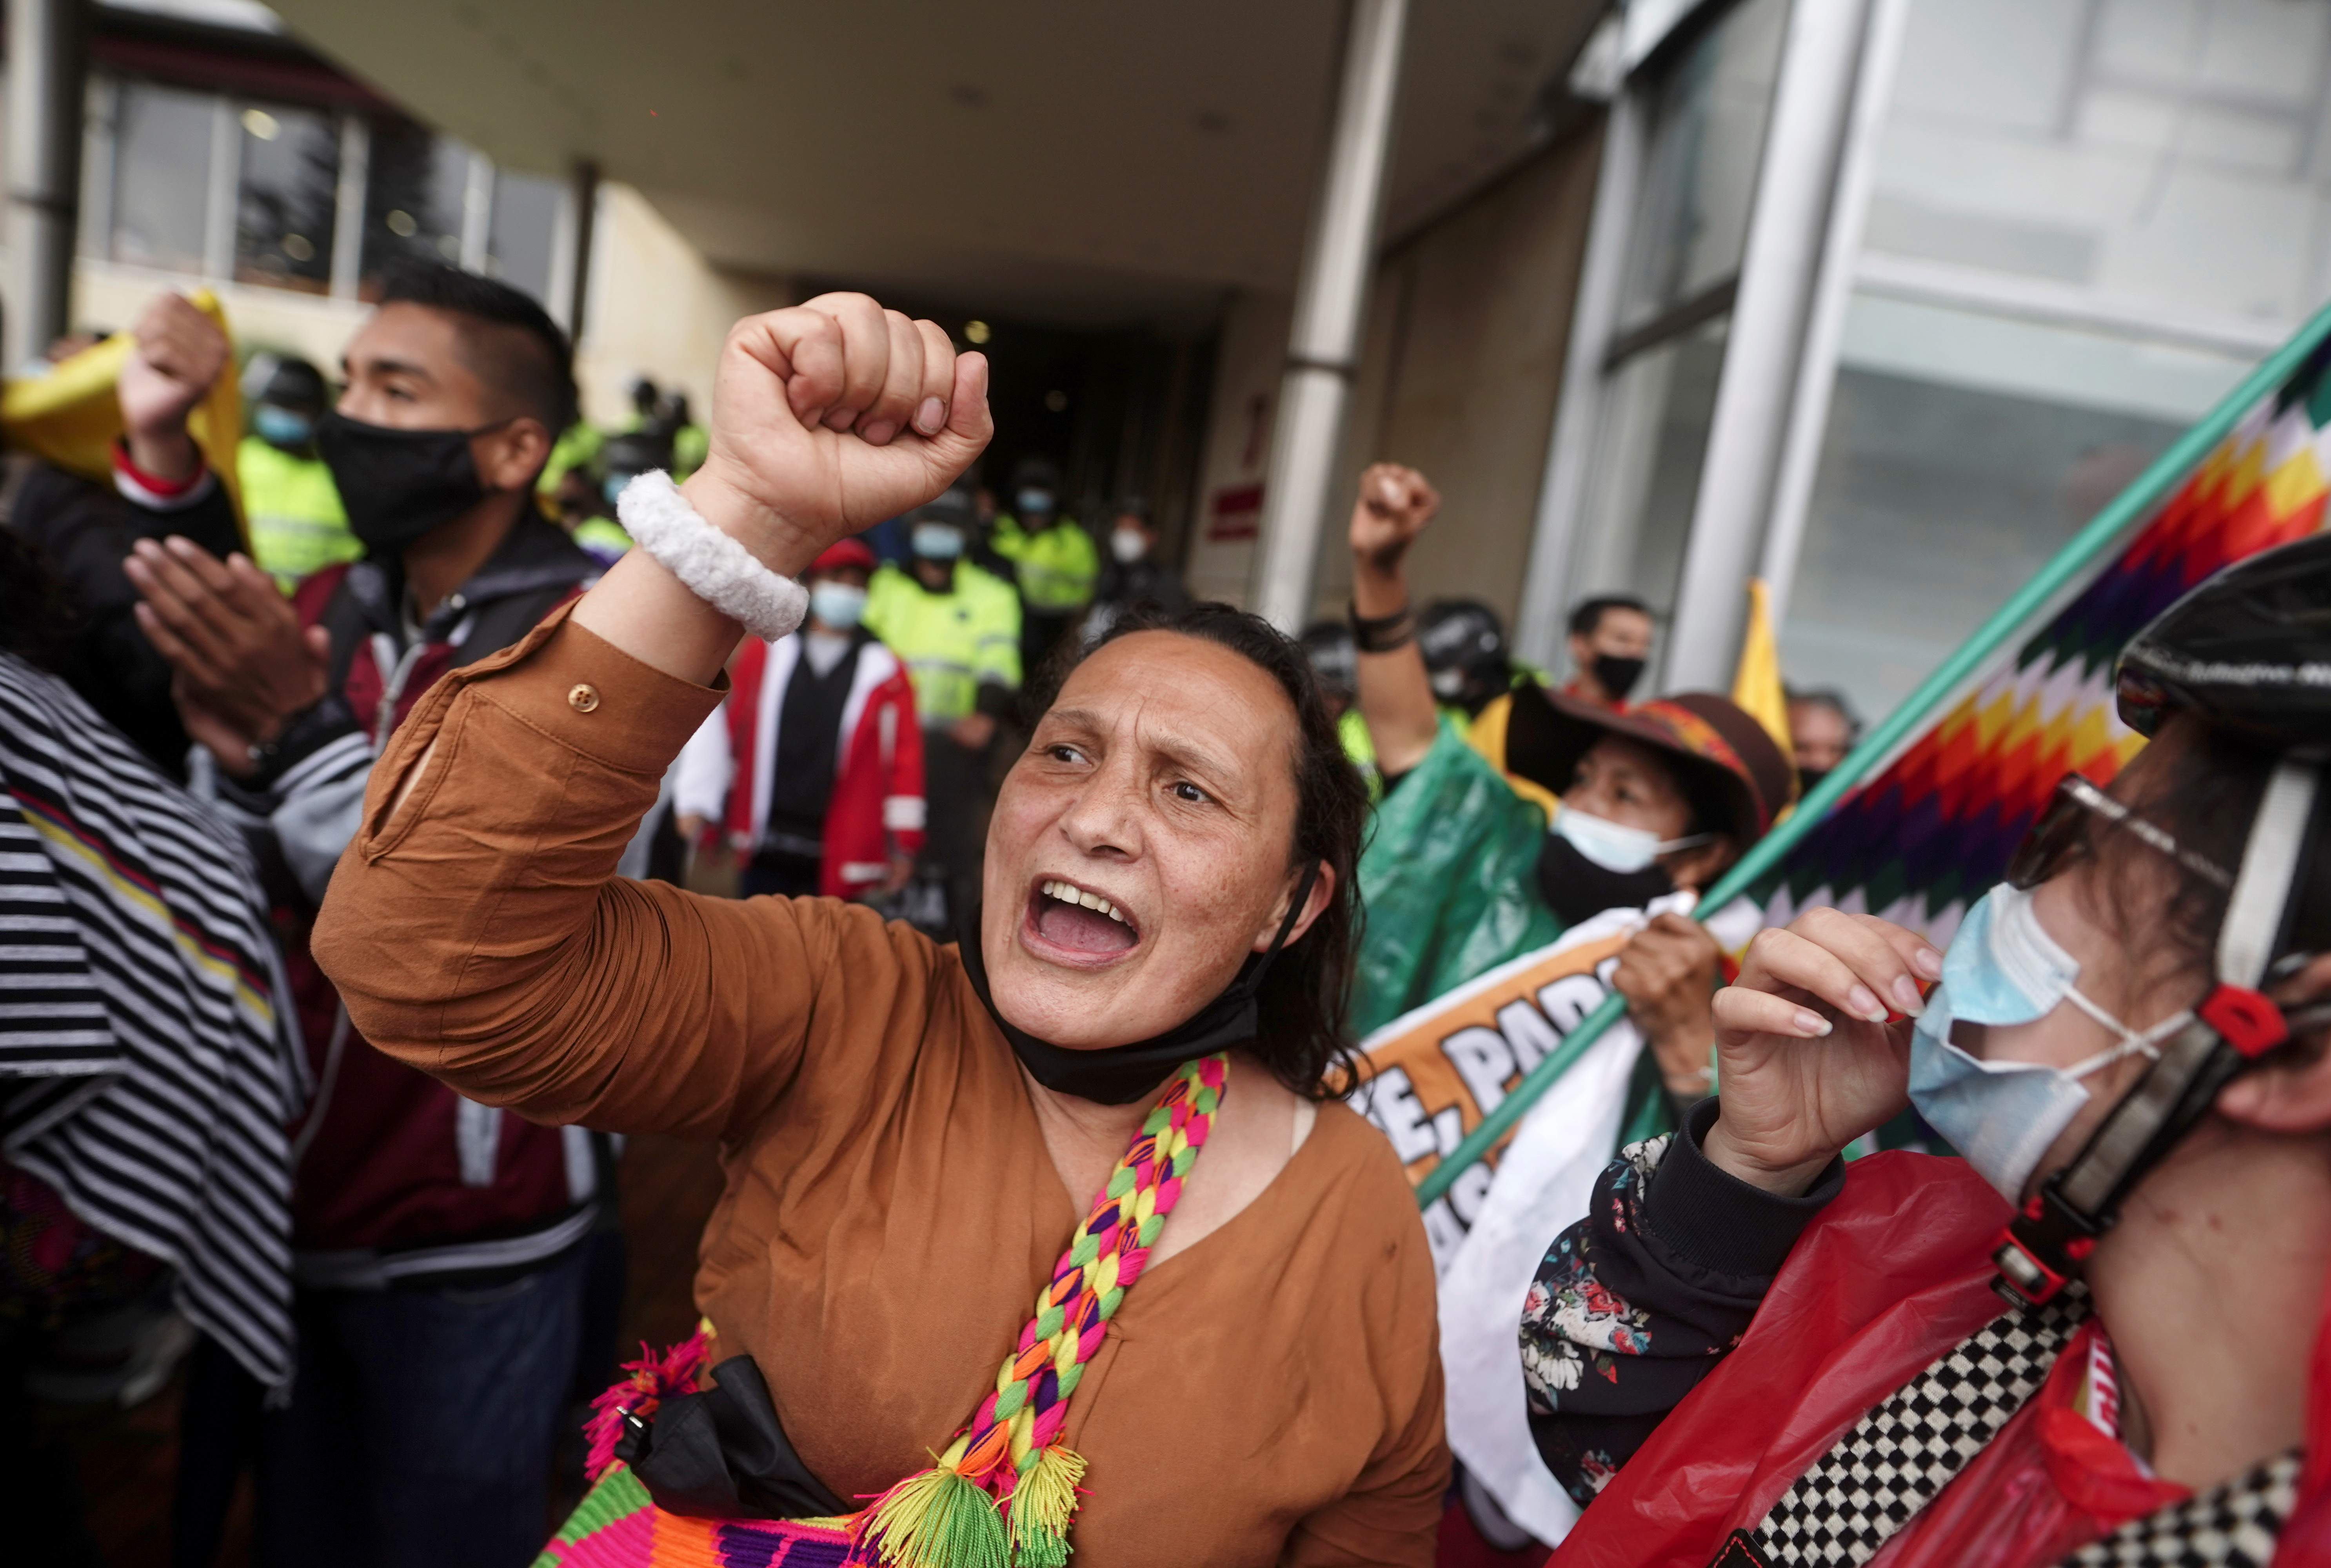 Demonstrators gather outside a local hotel where representatives of the Inter-American Commission on Human Rights (CIDH) and union leaders meet, in Bogota, Colombia June 9, 2021. REUTERS/Nathalia Angarita